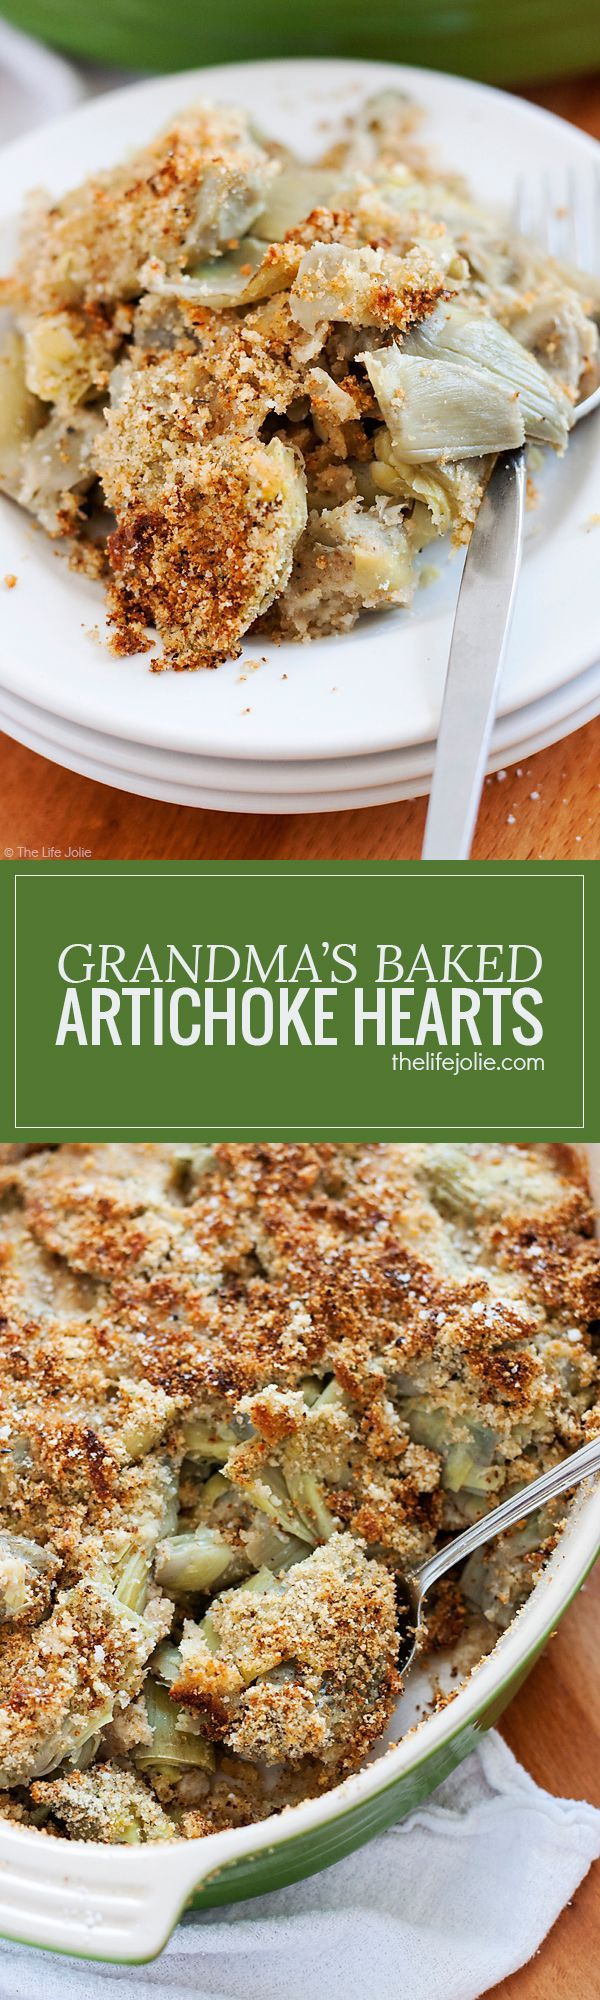 Grandma's Baked Artichoke Hearts is one of my favorite holiday side dishes. This is such an easy recipe and can even be made ahead of time. This is made with Parmesan cheese, bread crumbs and garlic powder and is a delicious addition to your Thanksgiving